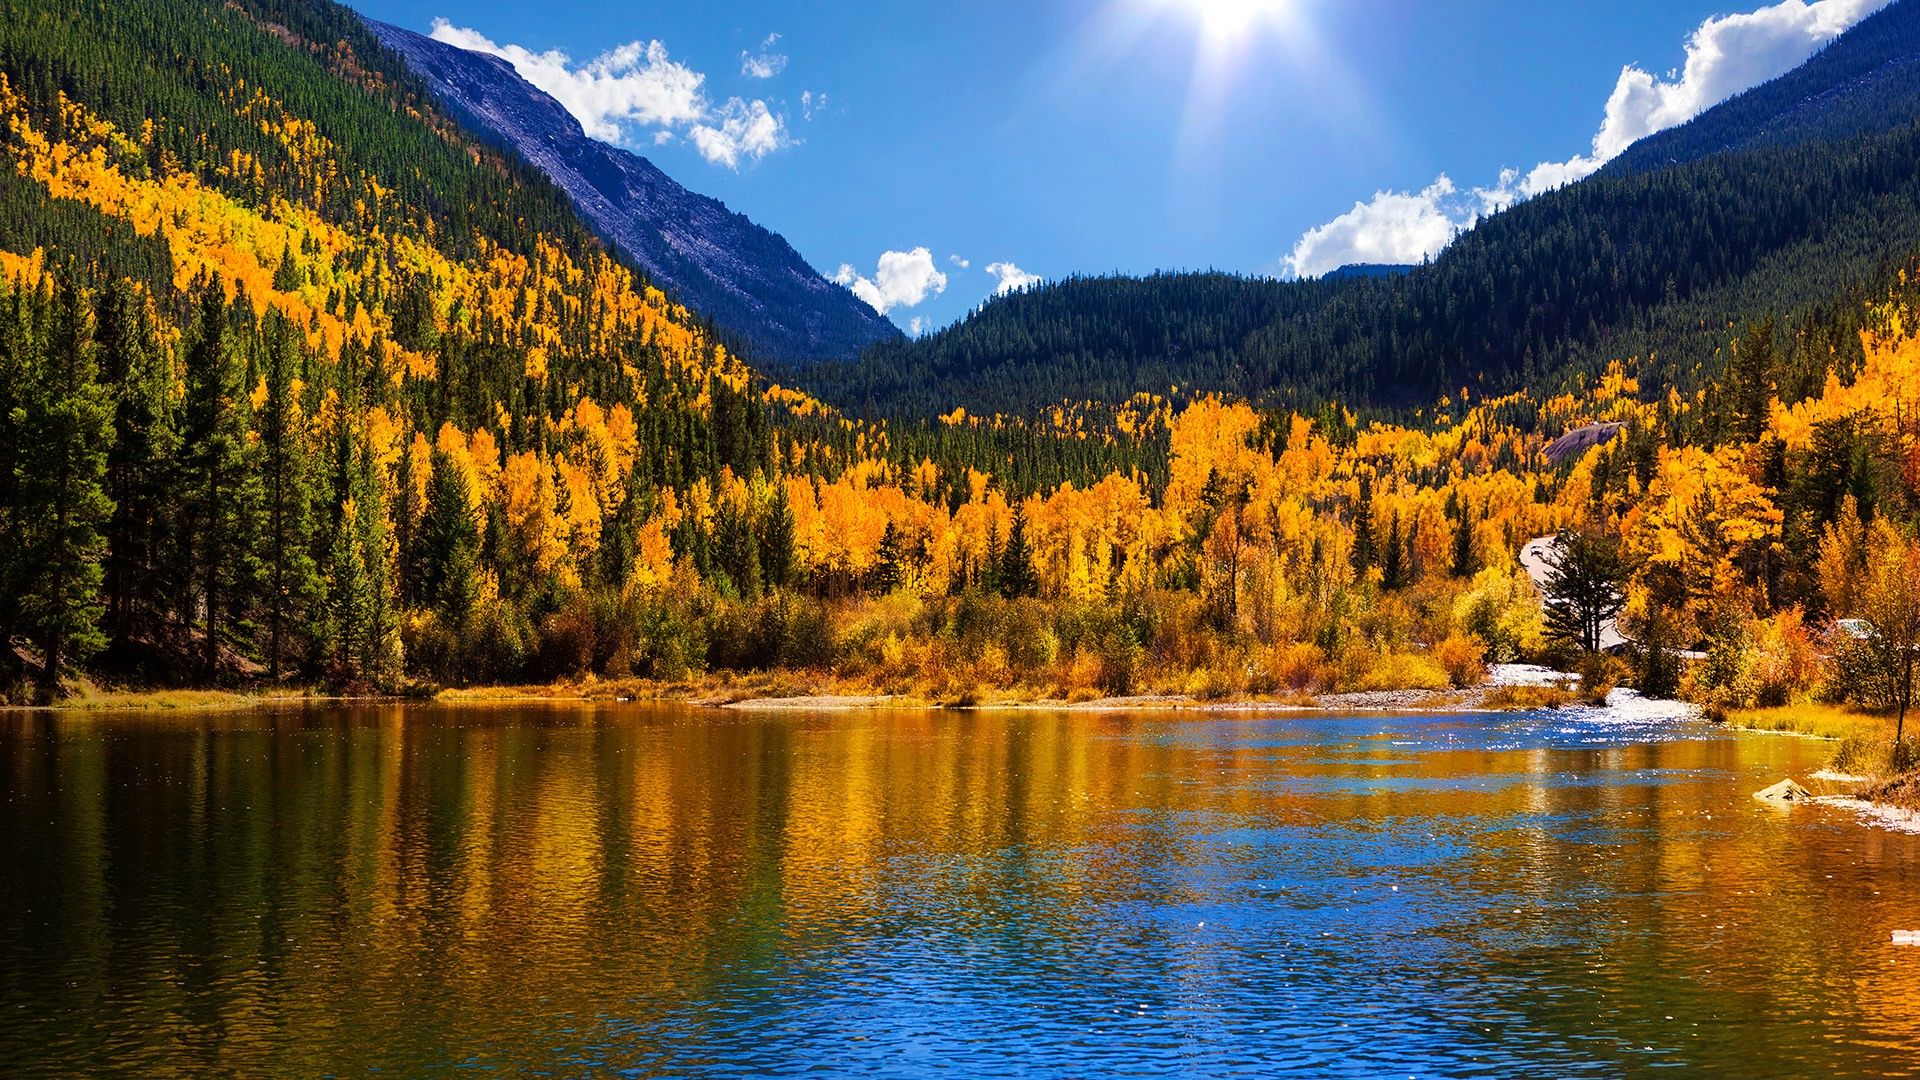 Fall Mountaons In The Sun Wallpaper Georgetown Reservoir In Autumn Arapaho National Forest